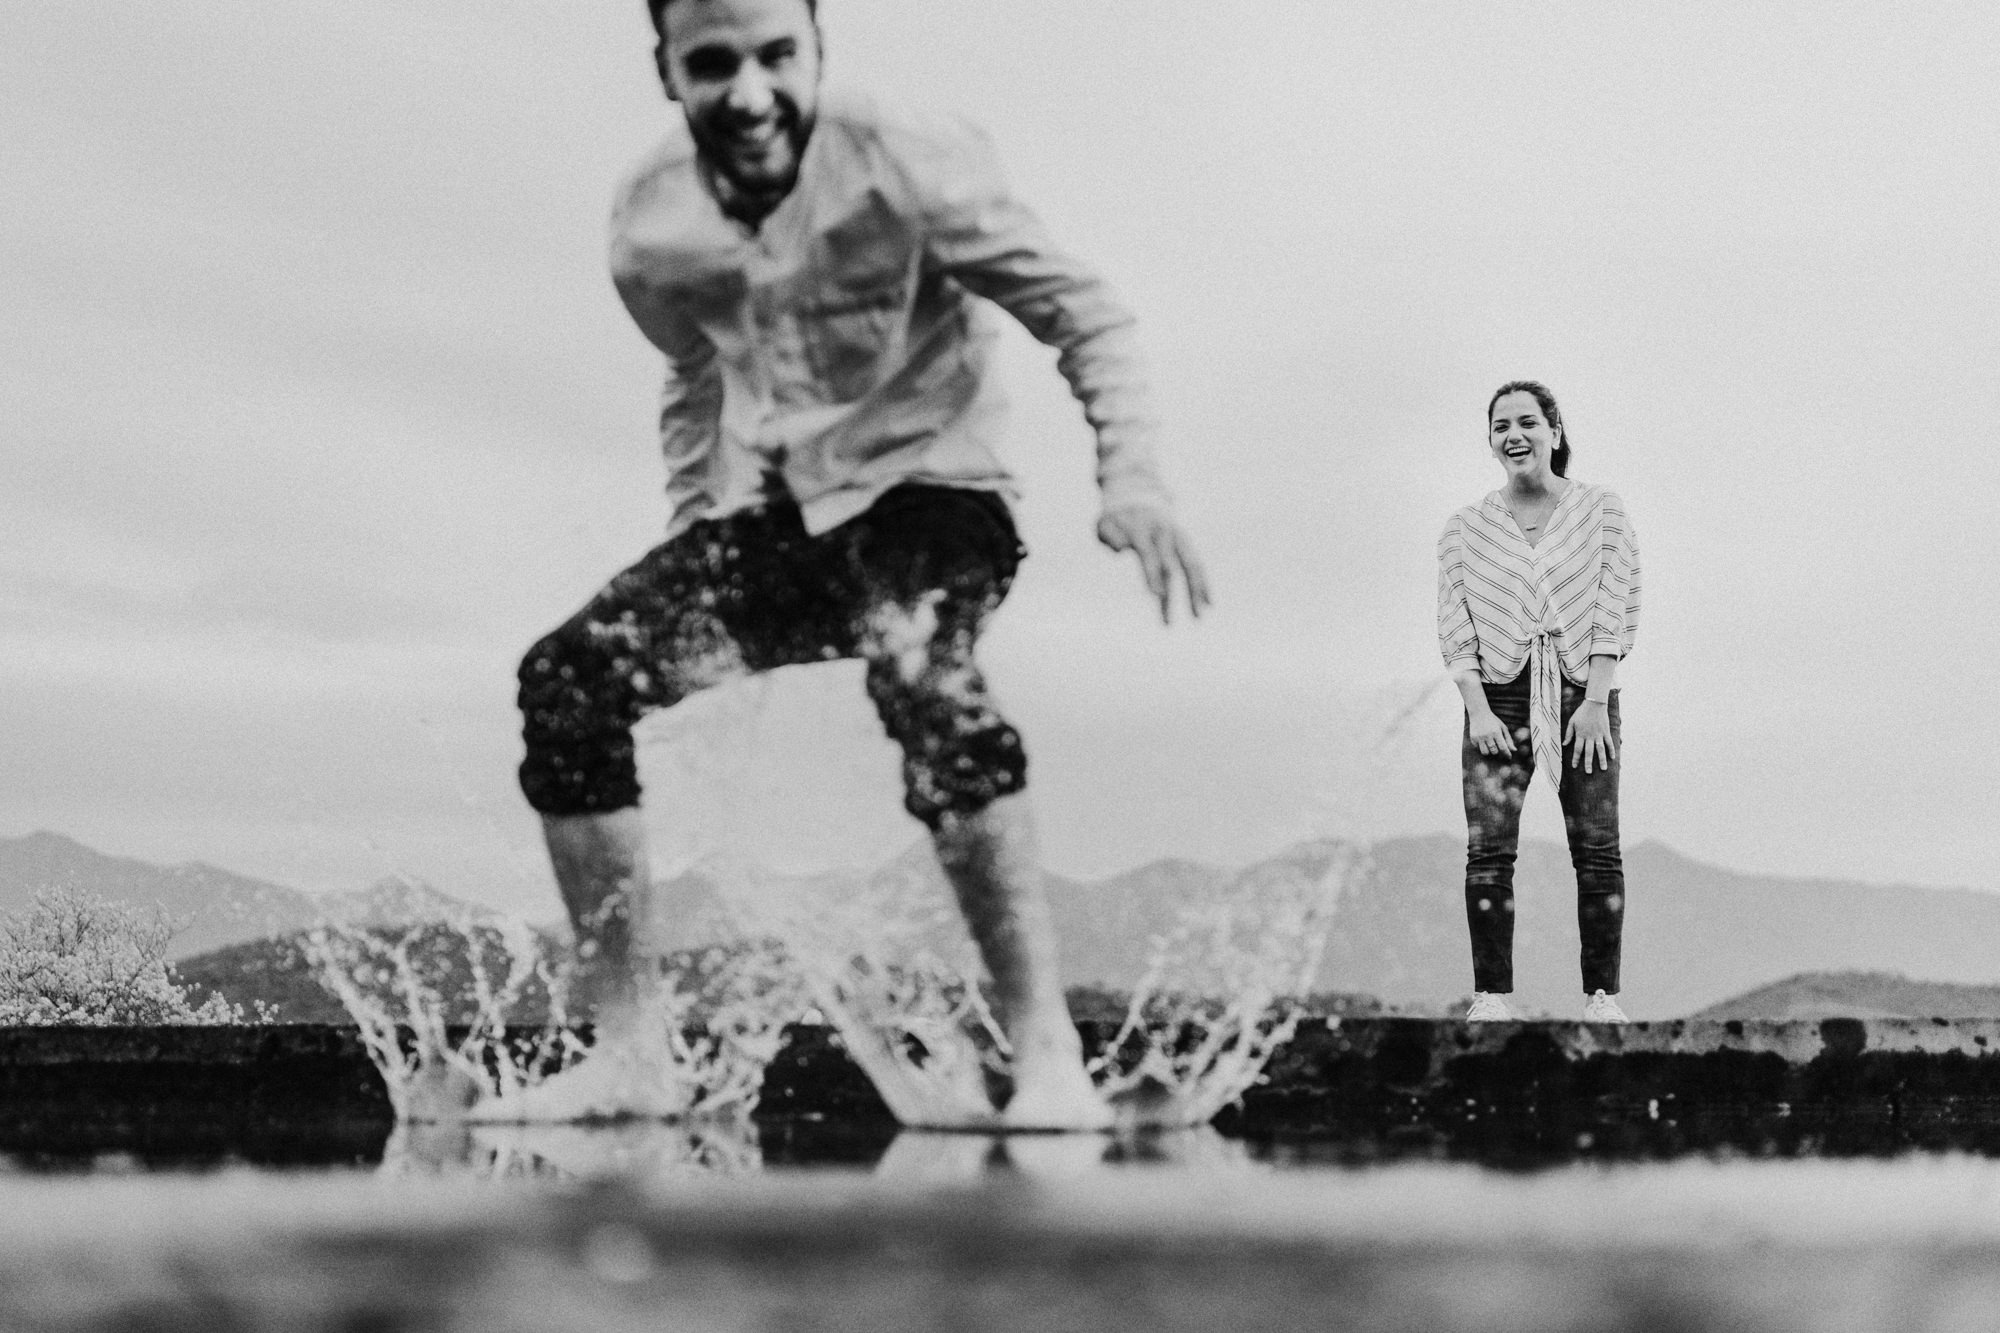 Fun black and white engagement photo by Fer Juaristi